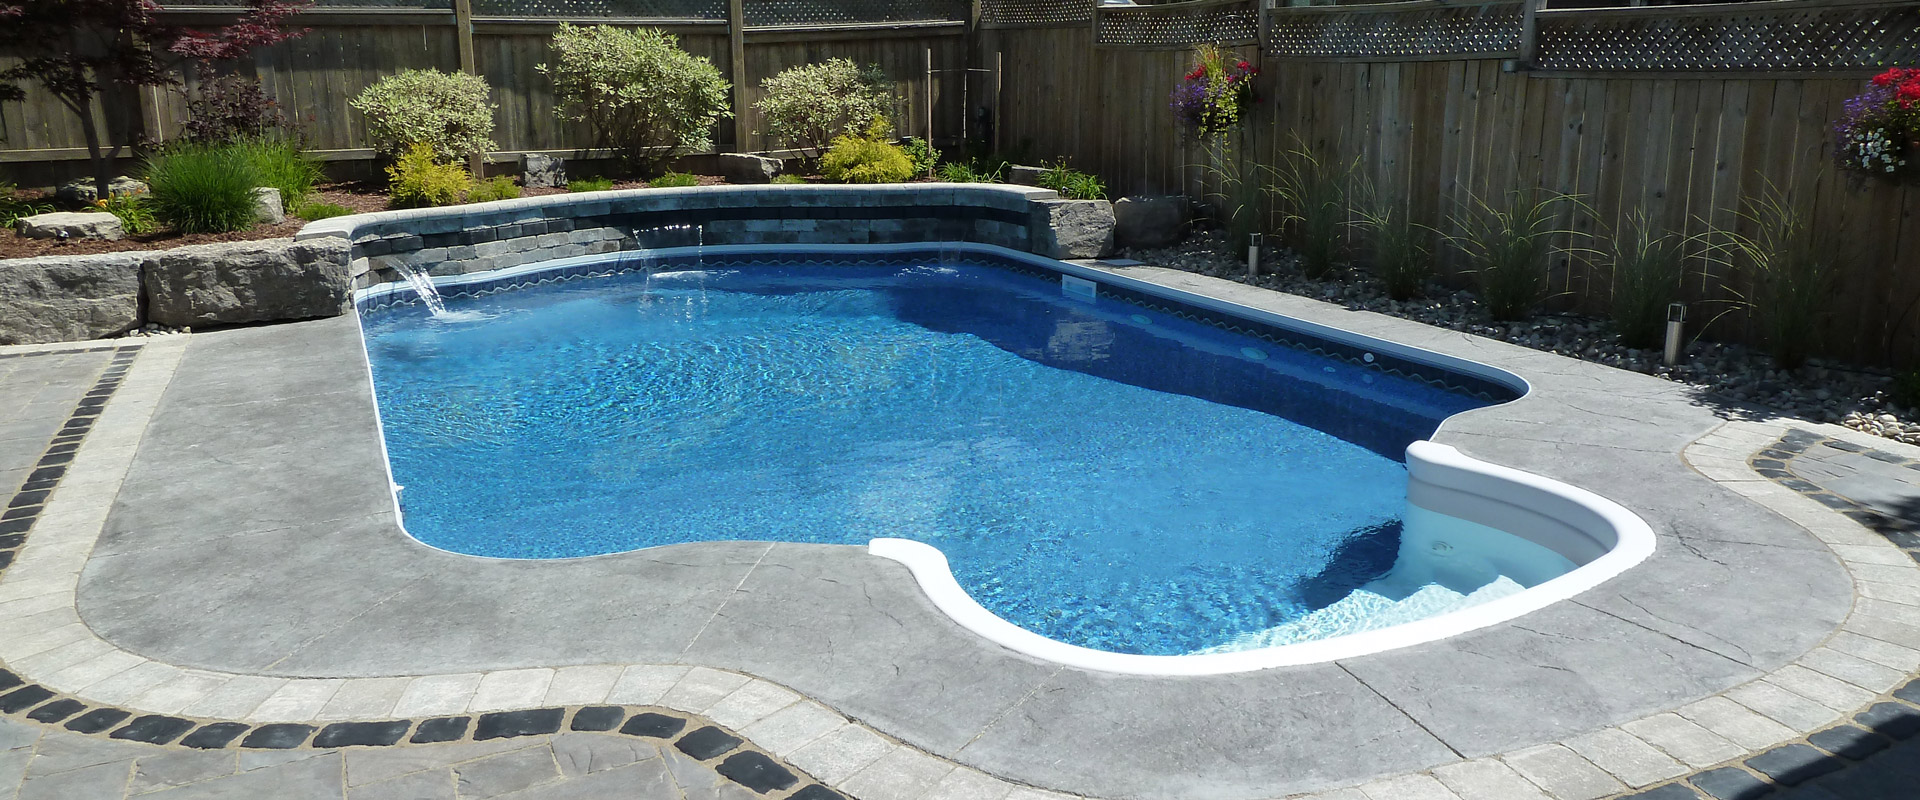 The mavrikkous inground pool showcase pioneer family pools for Pool showcase